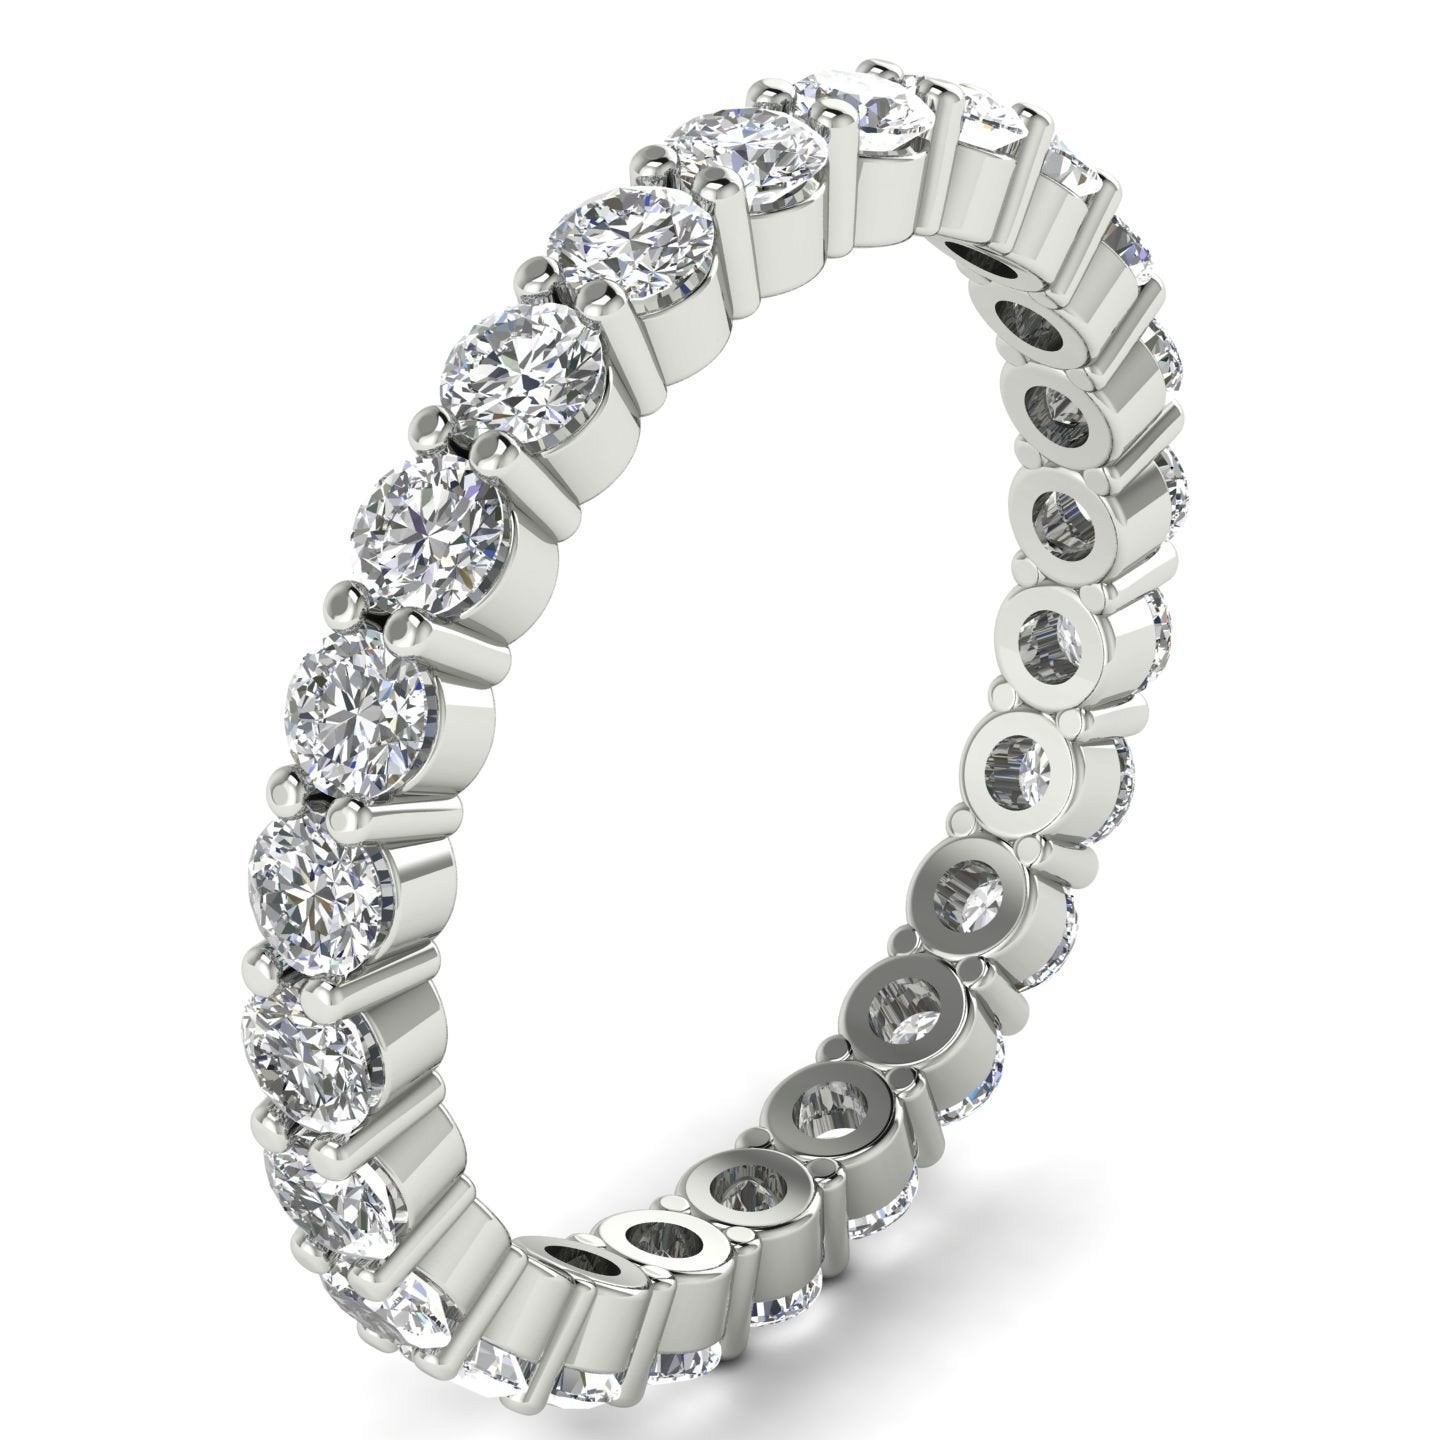 It is just a graphic of 38.38 CT Shared Prong Round Cut Diamond Eternity Wedding Band in 384KT